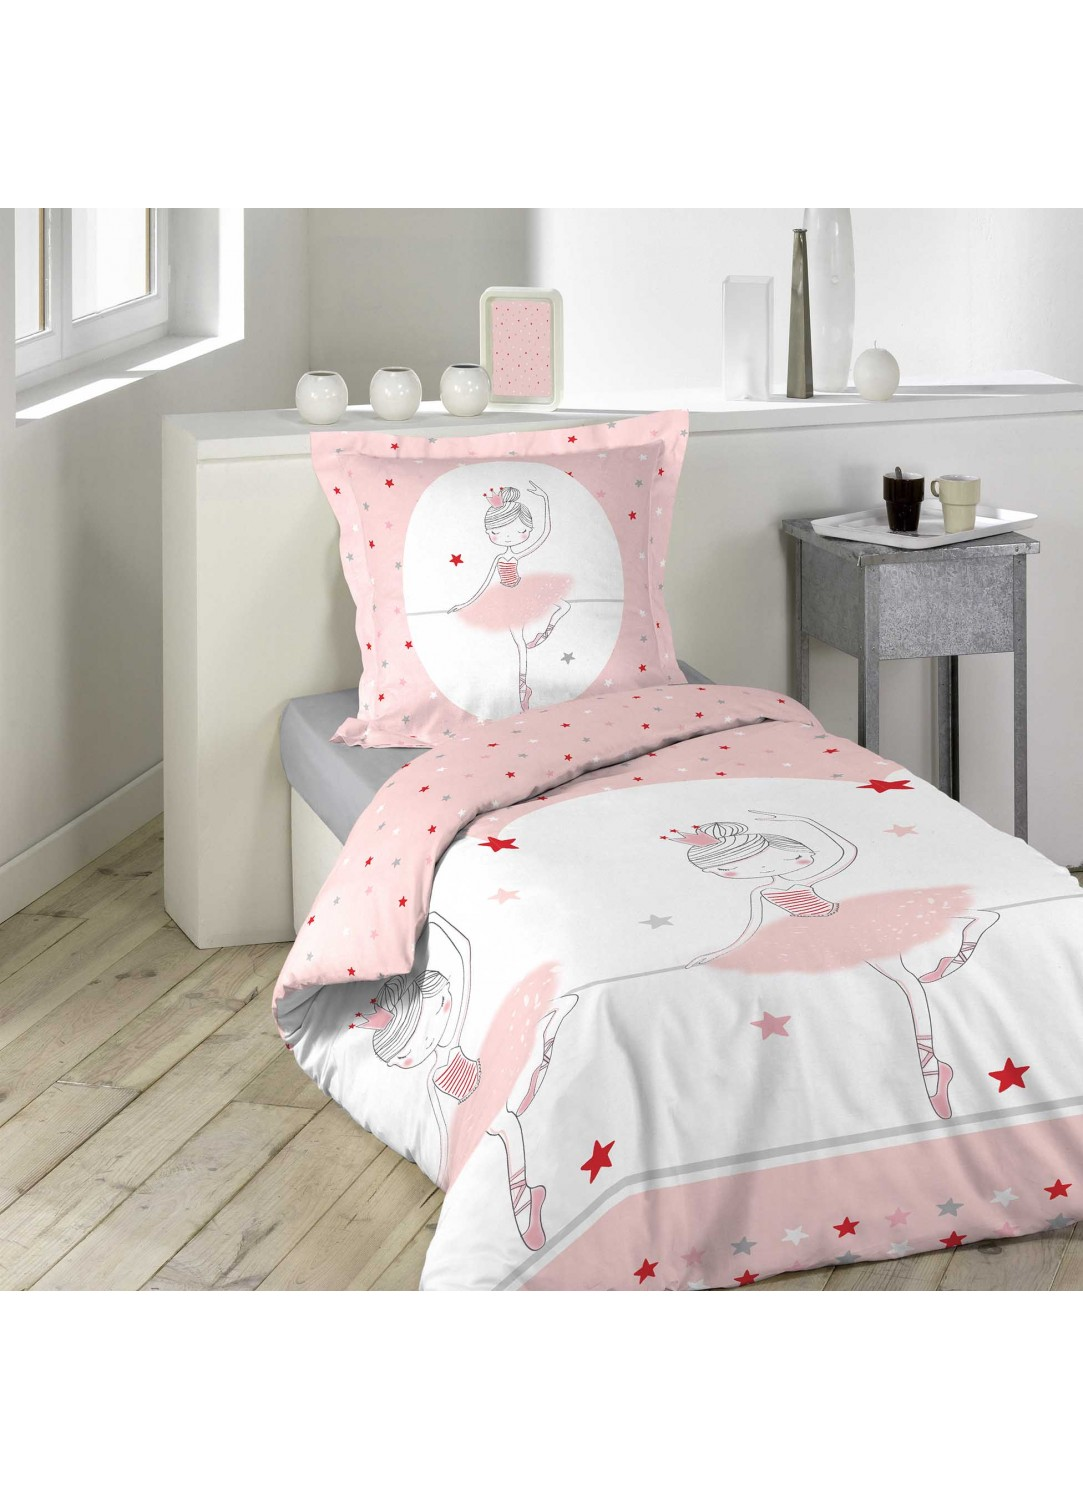 parure de lit enfant danseuse etoile multicolors. Black Bedroom Furniture Sets. Home Design Ideas